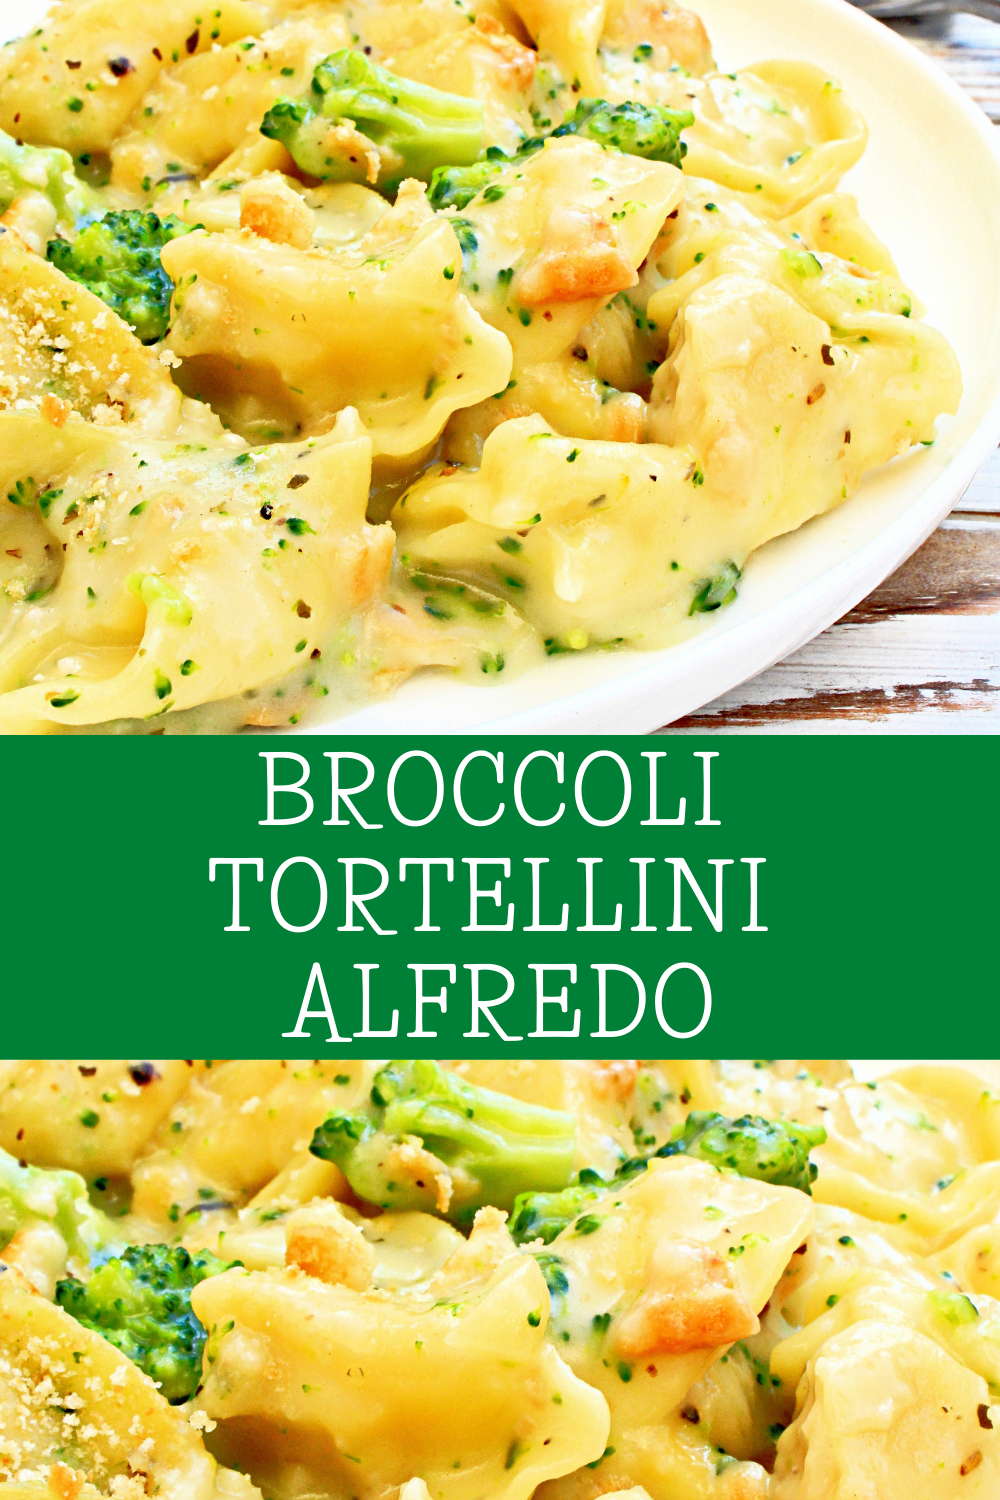 Vegan Broccoli Tortellini Alfredo ~ Easy, dairy-free casserole made with store-bought vegan tortellini and a quick, homemade Alfredo sauce. Ready to serve in 30 minutes! Perfect for busy weeknights! via @thiswifecooks